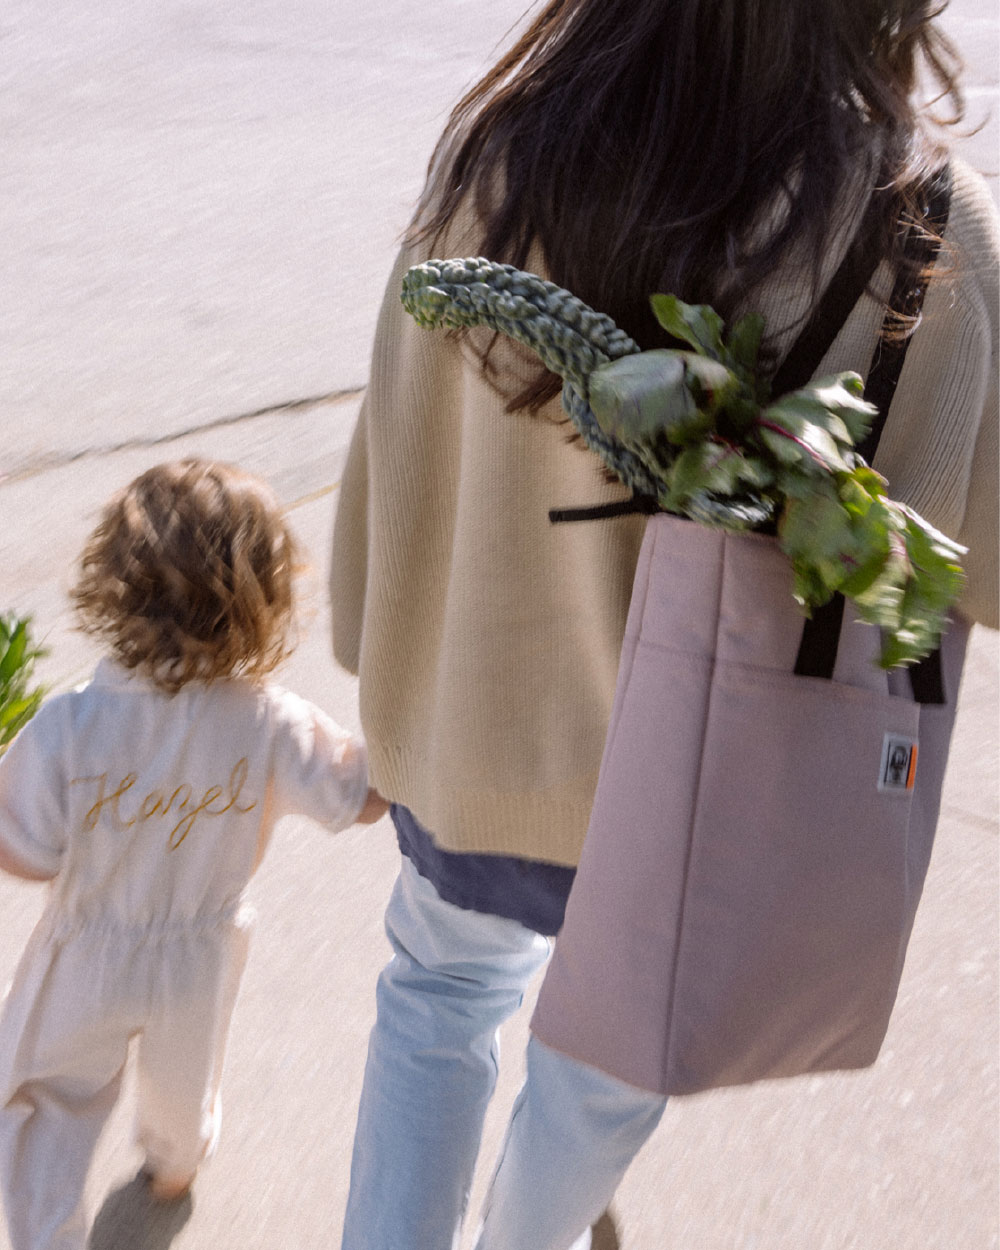 woman with a insulated tote full of groceries walks with her infant daughter.